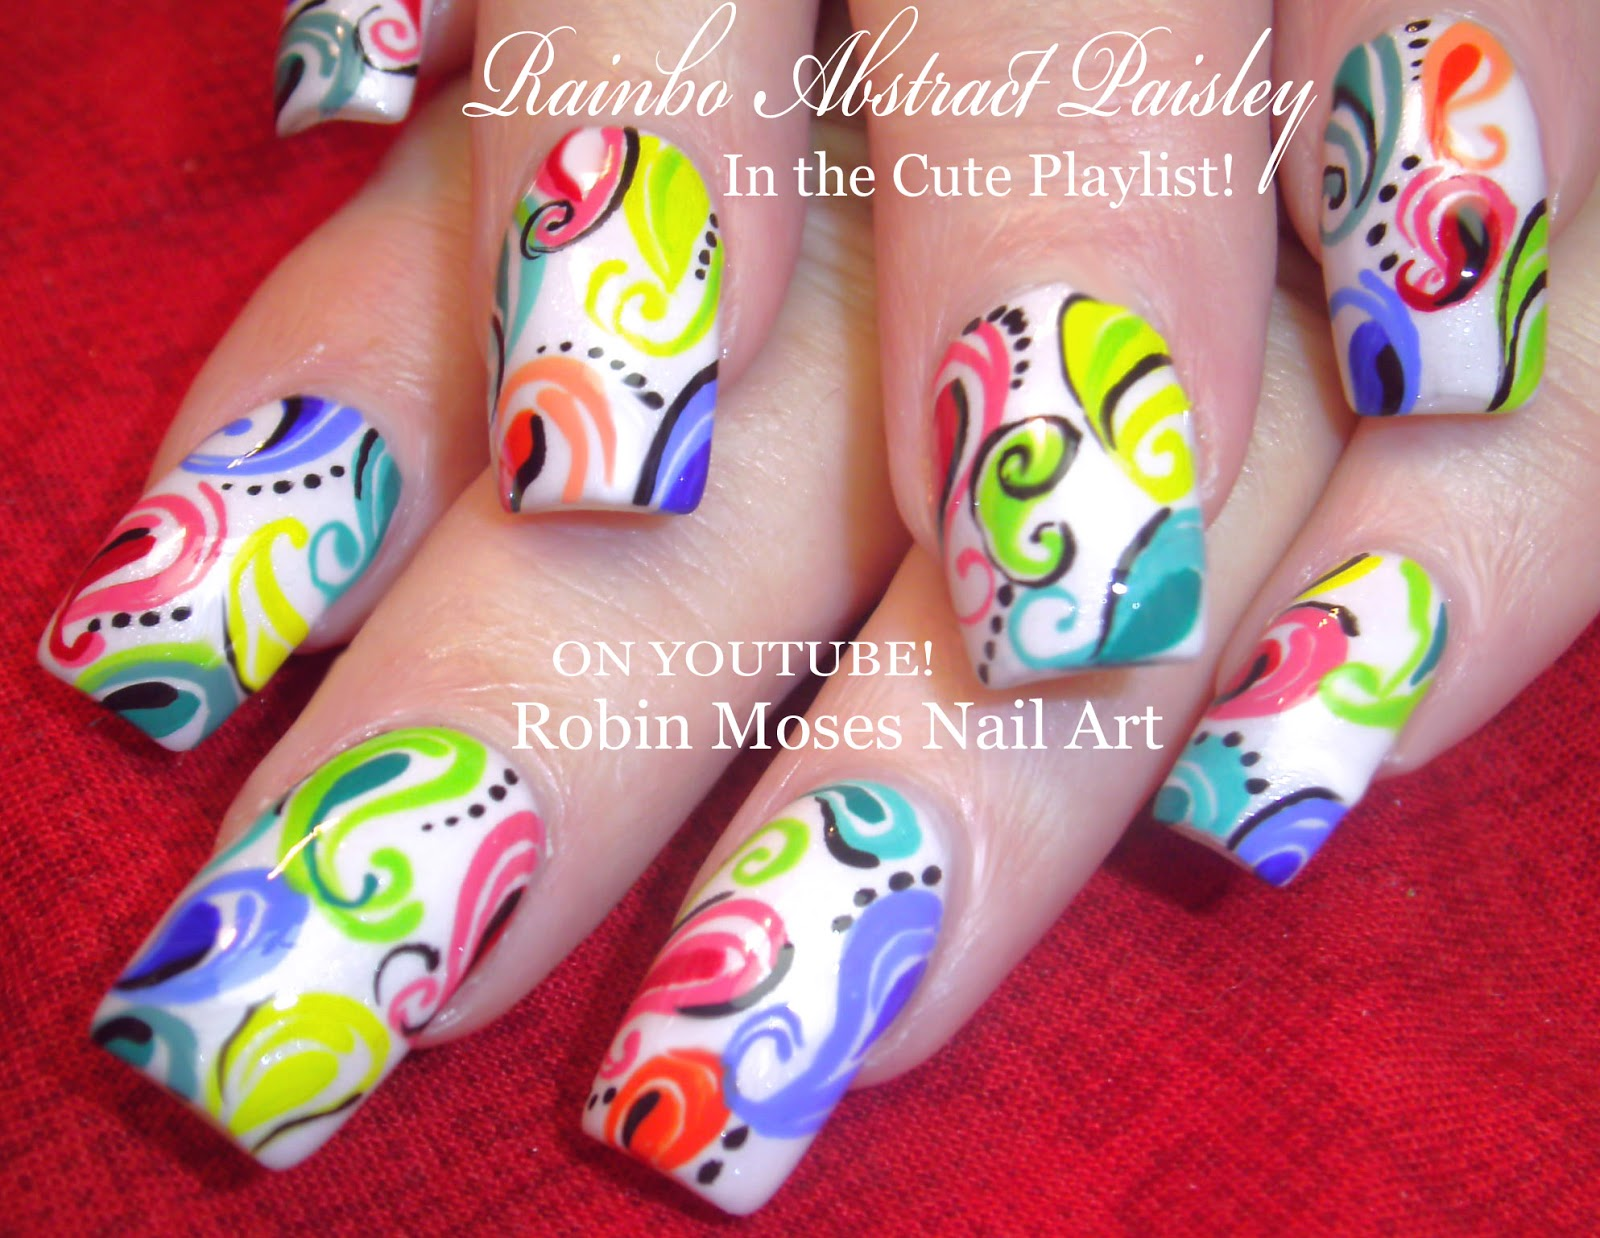 Robin moses nail art rainbow paisley nails rainbow nails rainbow neon paisley nails happy nail art design tutorial prinsesfo Image collections